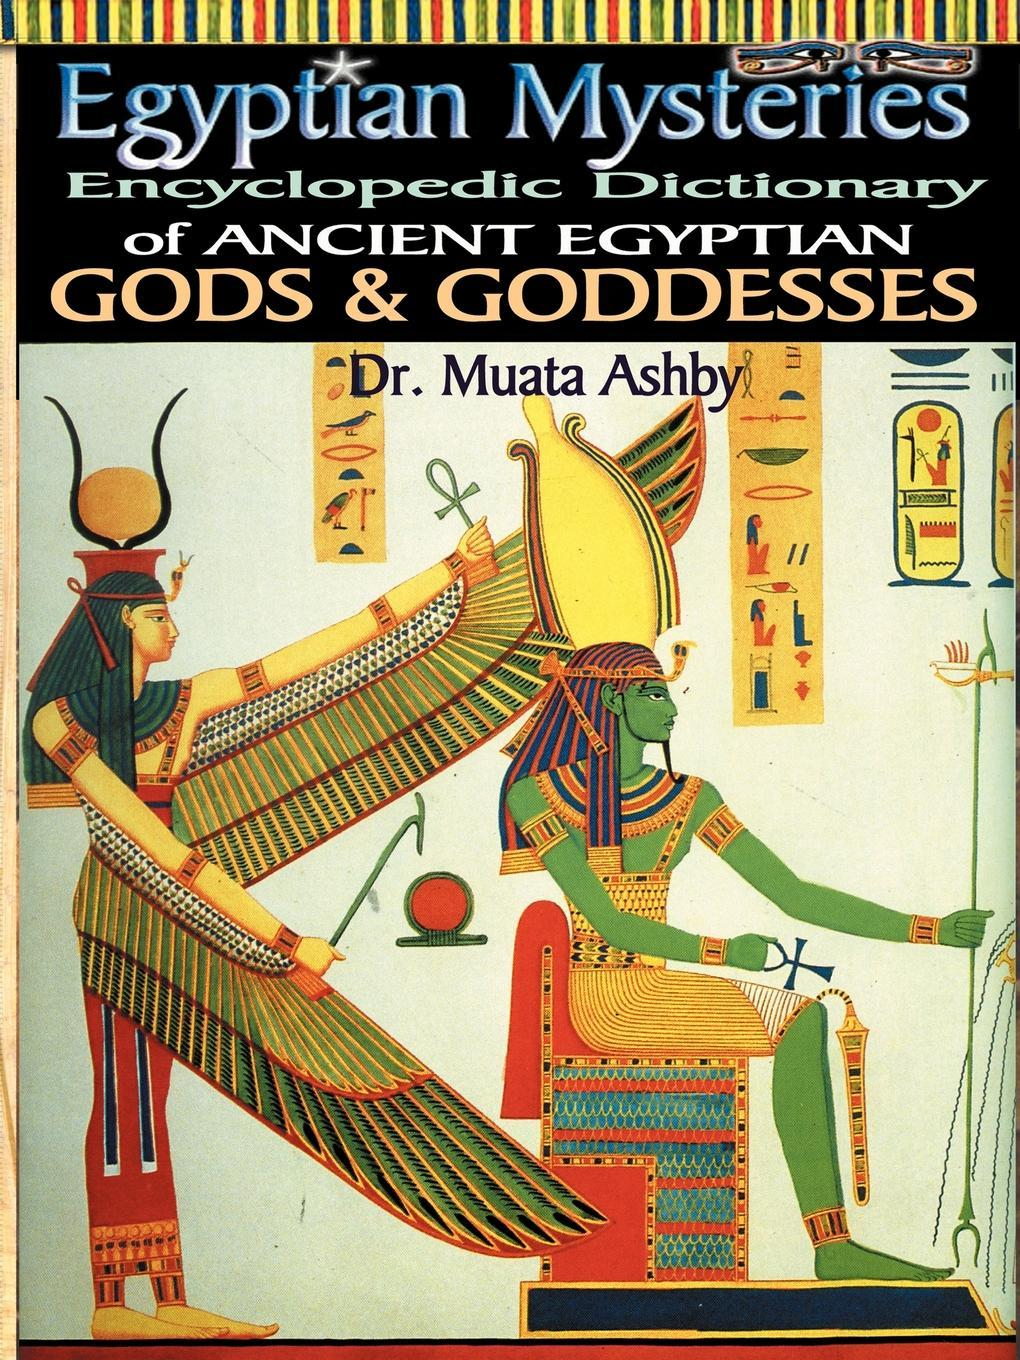 EGYPTIAN MYSTERIES VOL 2- Dictionary of Gods and Goddesses of Ancient Egypt EB9781937016067